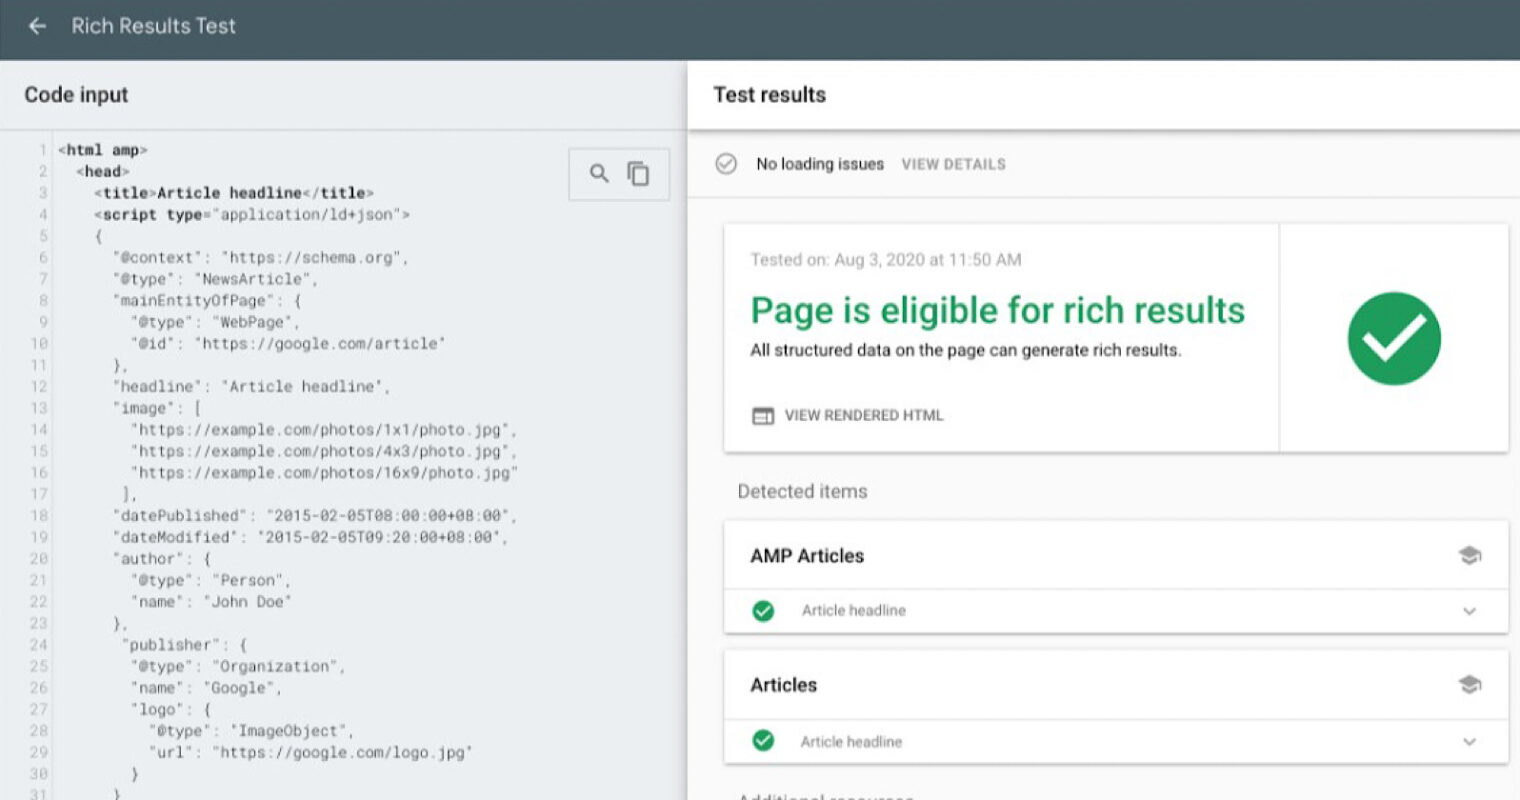 Google's Rich Results Test Tool Supports 'Article' Markup